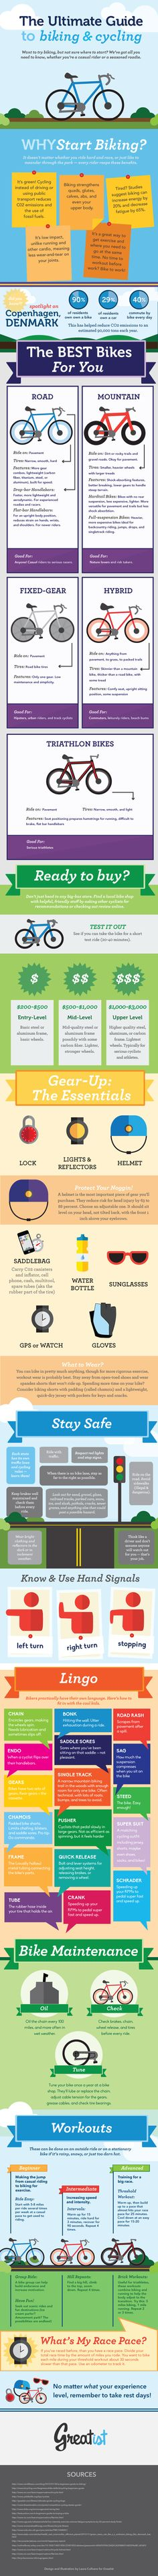 Ultimate Guide to Biking and Cycling [INFOGRAPHIC] Here's what you need to know about biking and cycling.Here's what you need to know about biking and cycling. Cardio Yoga, Fitness Tips, Fitness Motivation, Health Fitness, Cycling Motivation, Michelle Lewin, Weight Lifting, Weight Loss, Cycling Tips